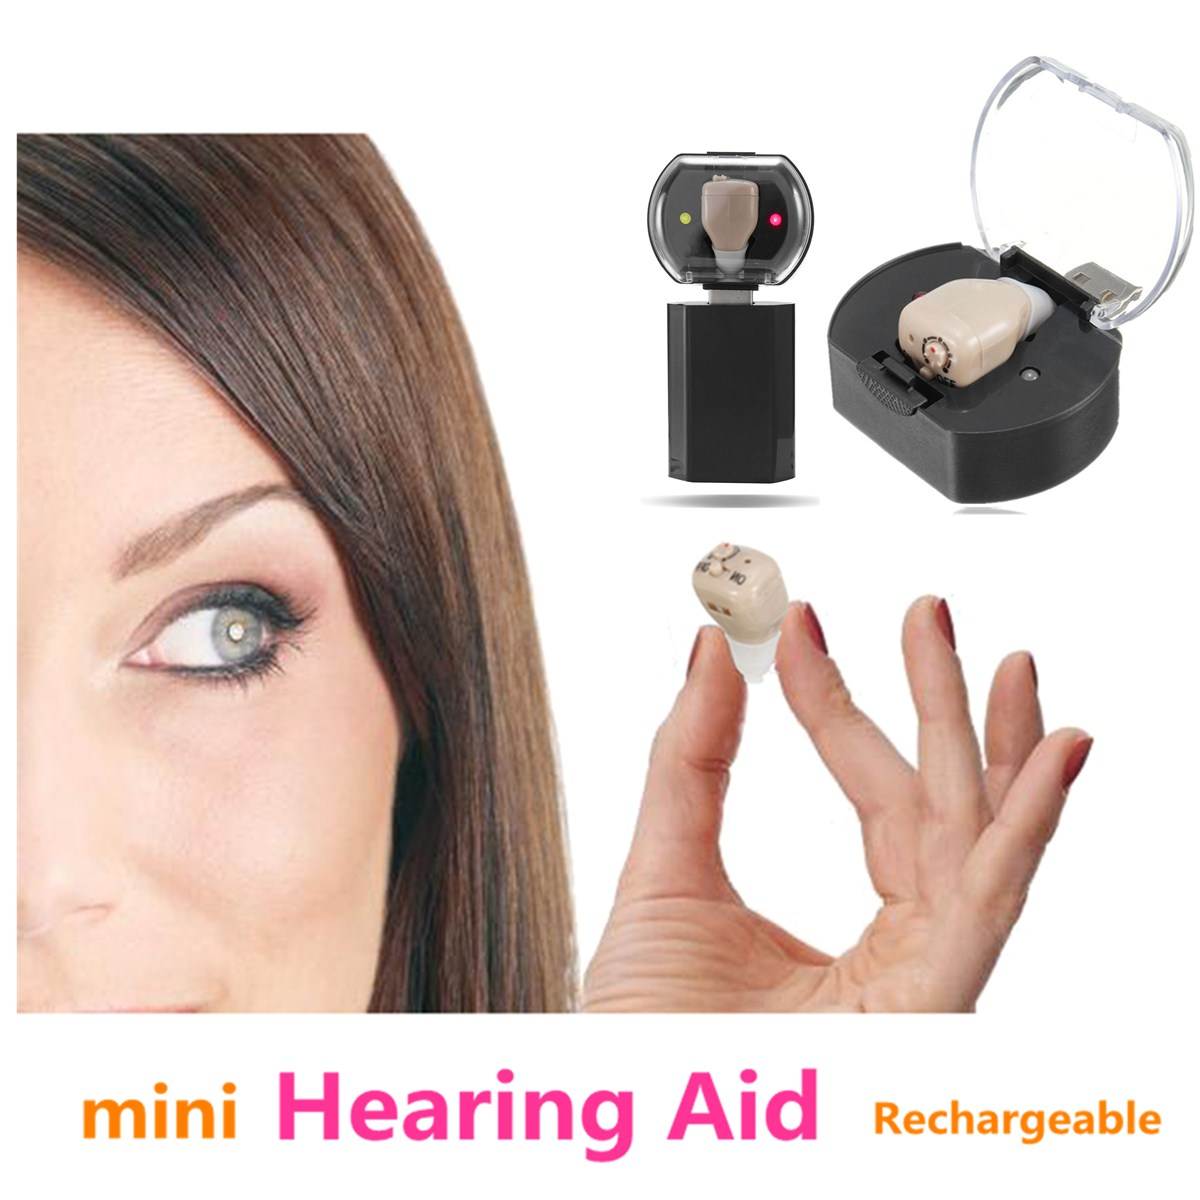 Best Rechargeable Mini In Ear Hearing Aids Kit Digital Sound Amplifiers with Adjustable Volume Tone Control Voice Assisted Listening Device